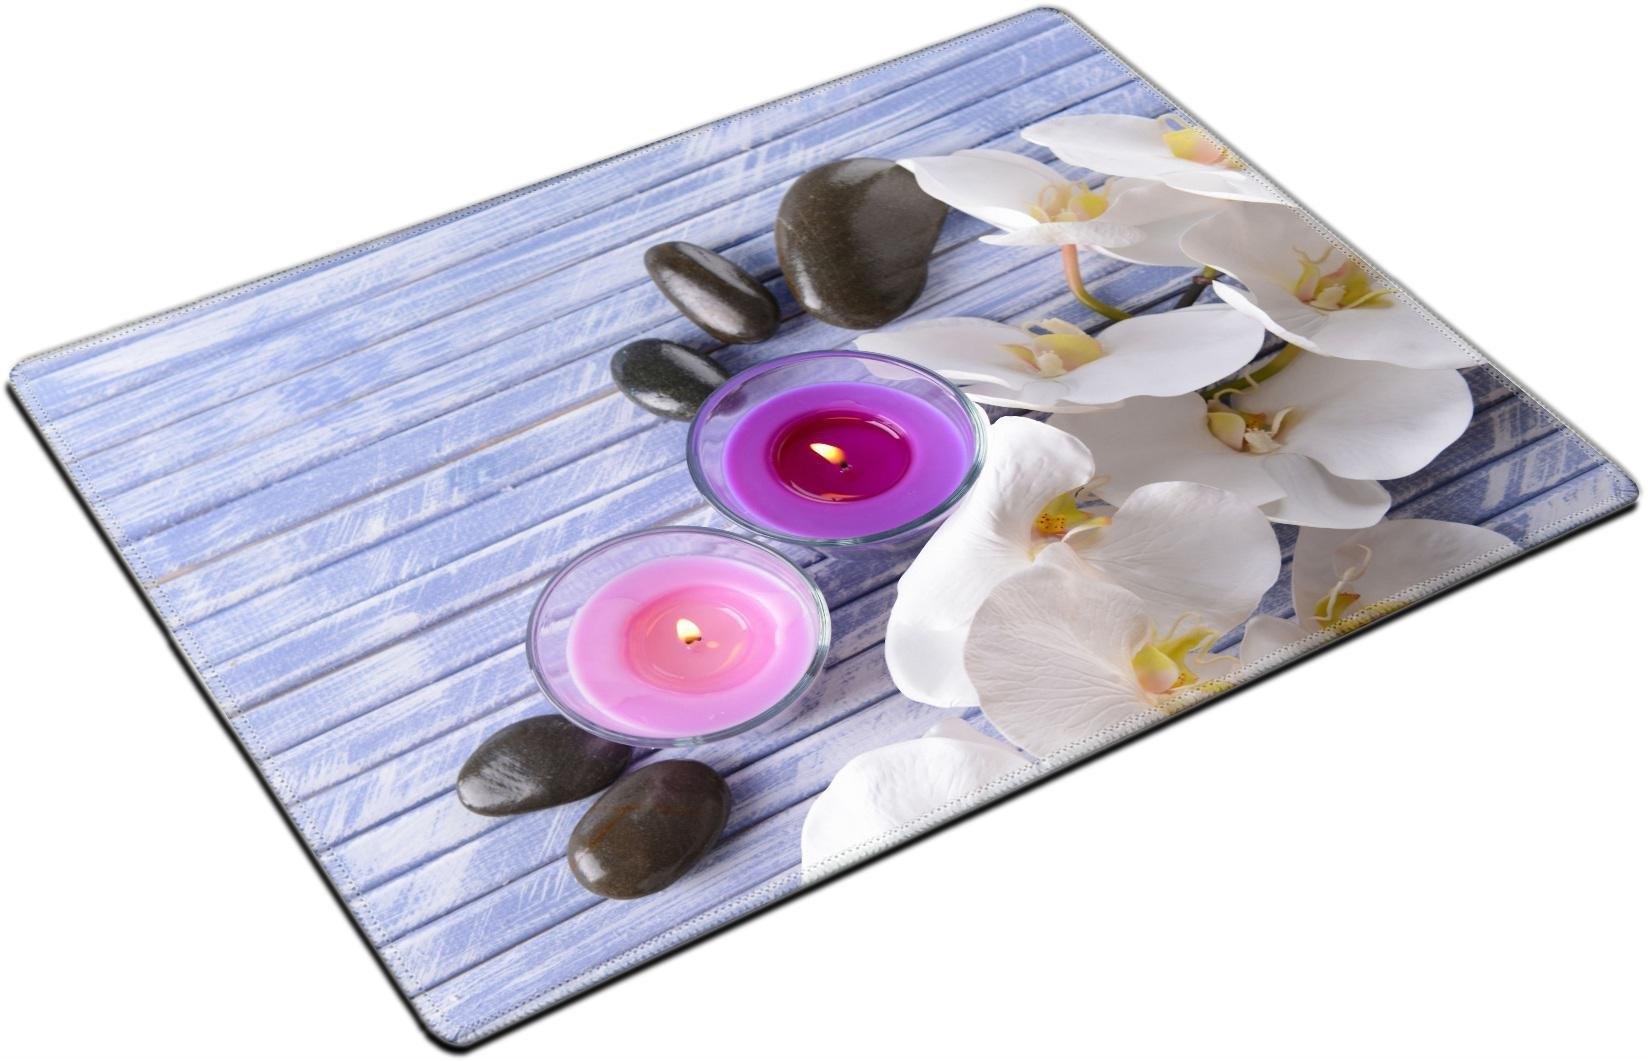 MSD Placemat Non-Slip Natural Rubber Desk Pads Place-mats Design 24835136 Beautiful Colorful Candles Spa Stones and Orchid Flower on Color Wooden Background